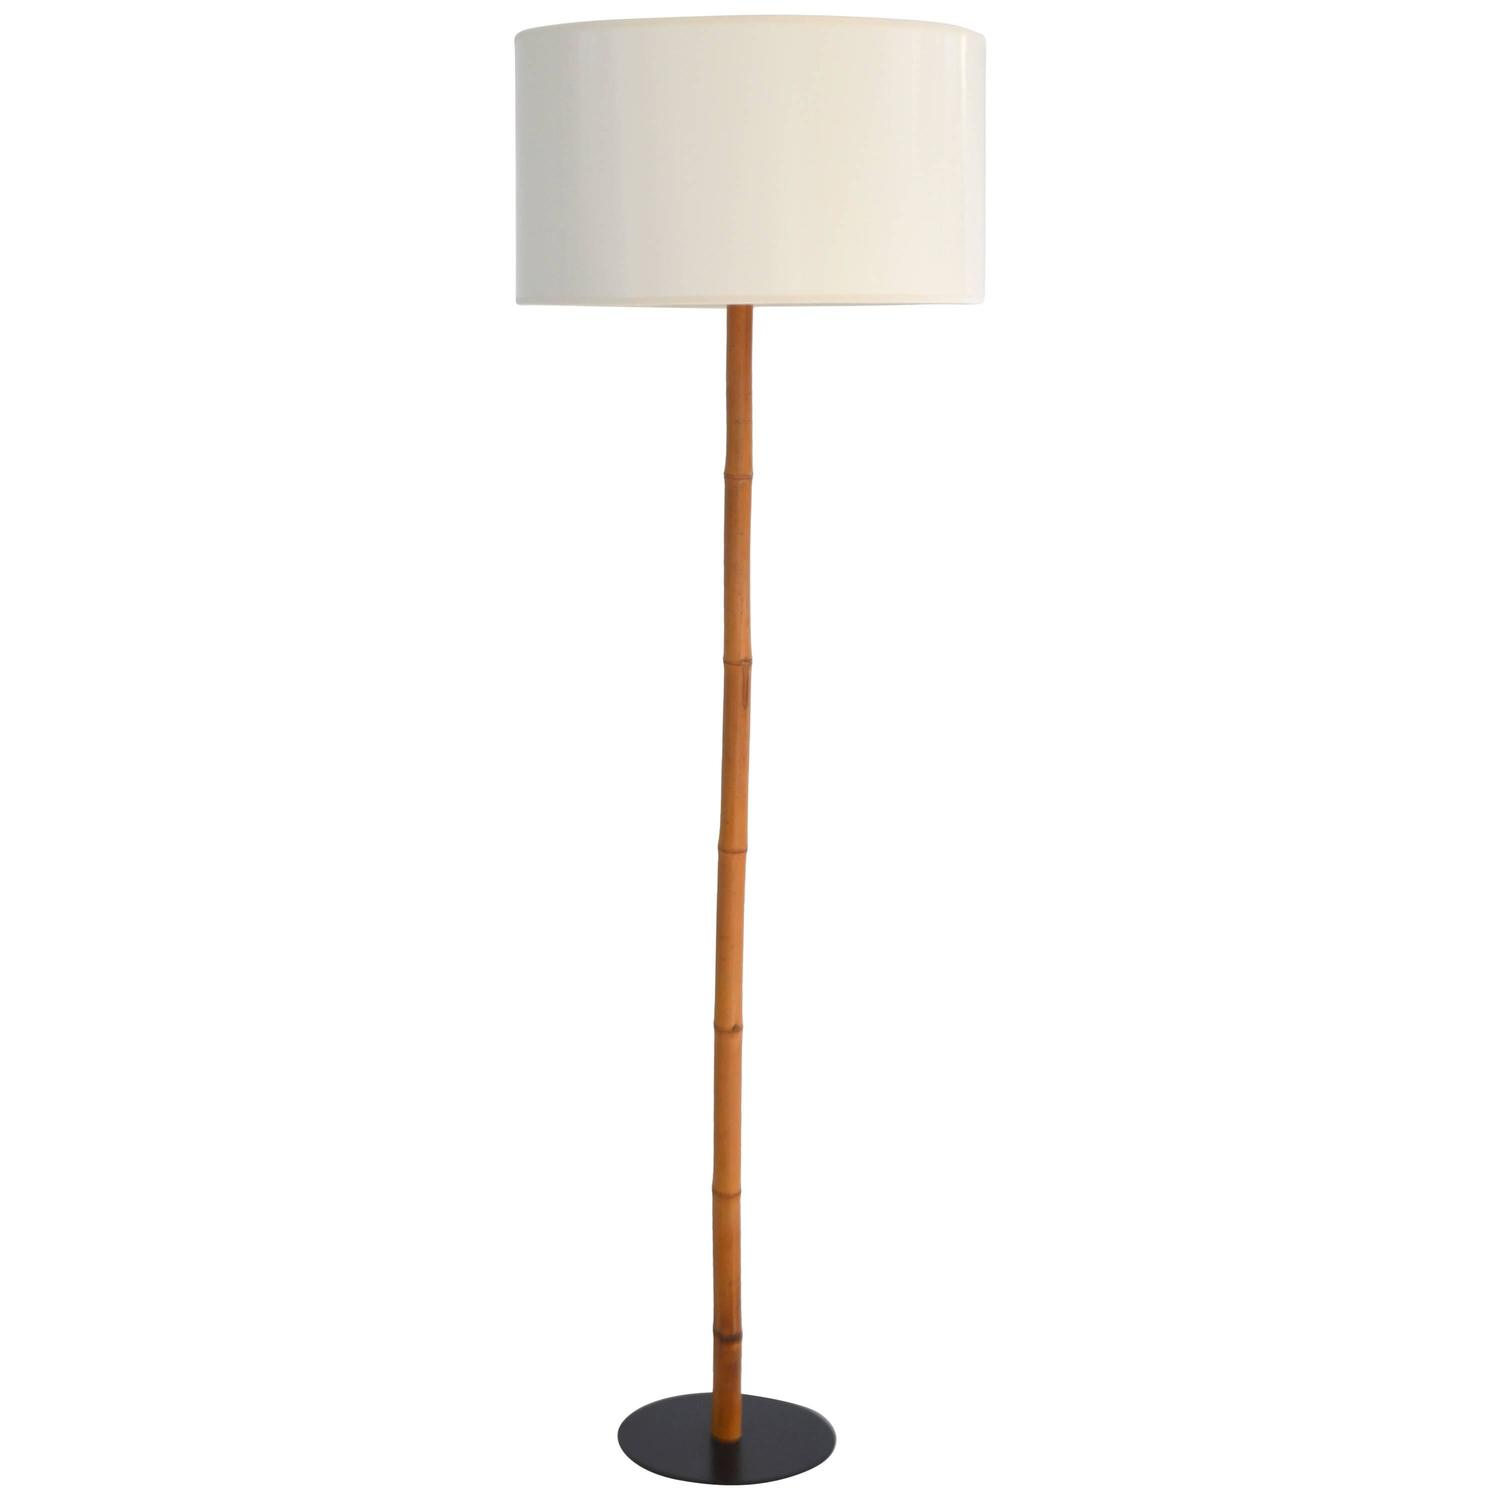 Mid Century Bamboo Floor Lamp by George Kovacs For Sale at 1stdibs